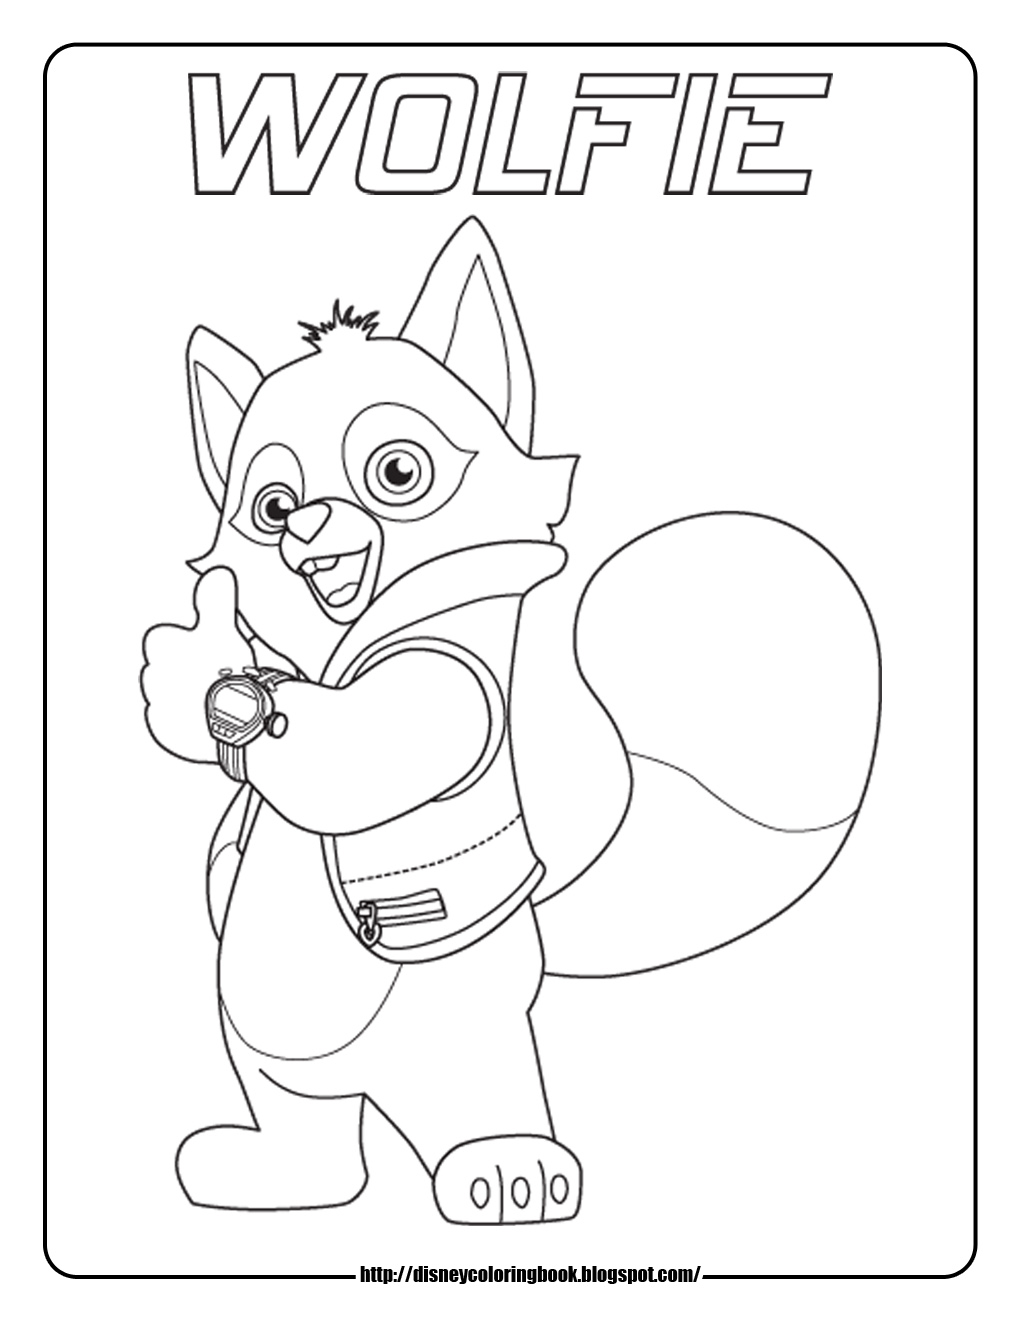 Special Agent Oso 1 Free Disney Coloring Sheets Learn Special Colouring Pages